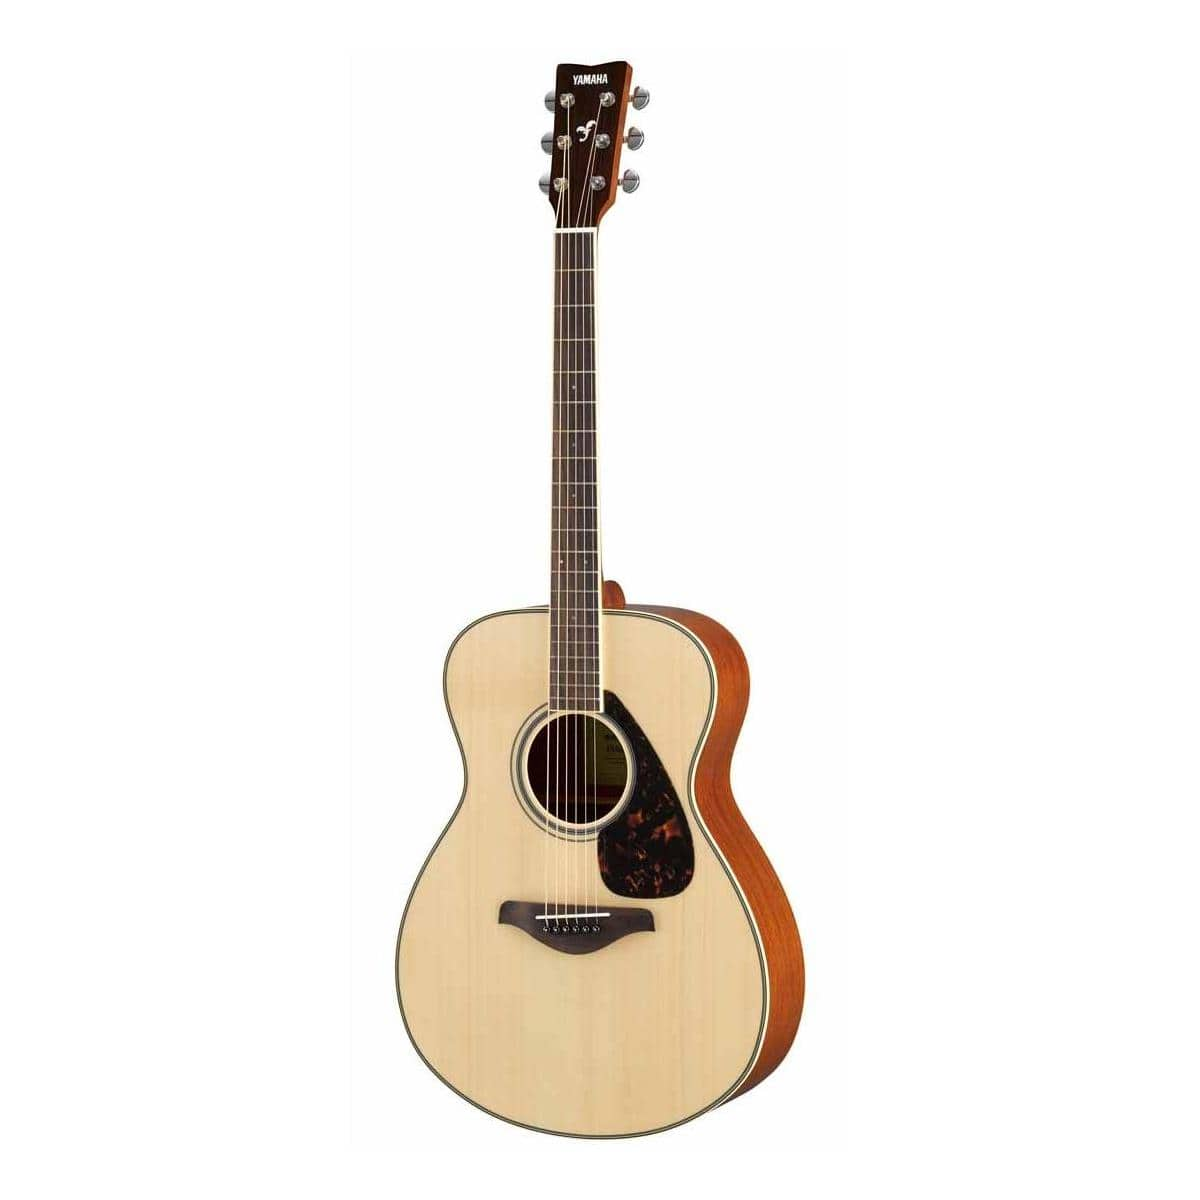 Yamaha Acoustic Guitar Sale: FS820  $180, FG830 $230, FG850 $280, FGX800C (accoustic / electric) $220 + free shipping